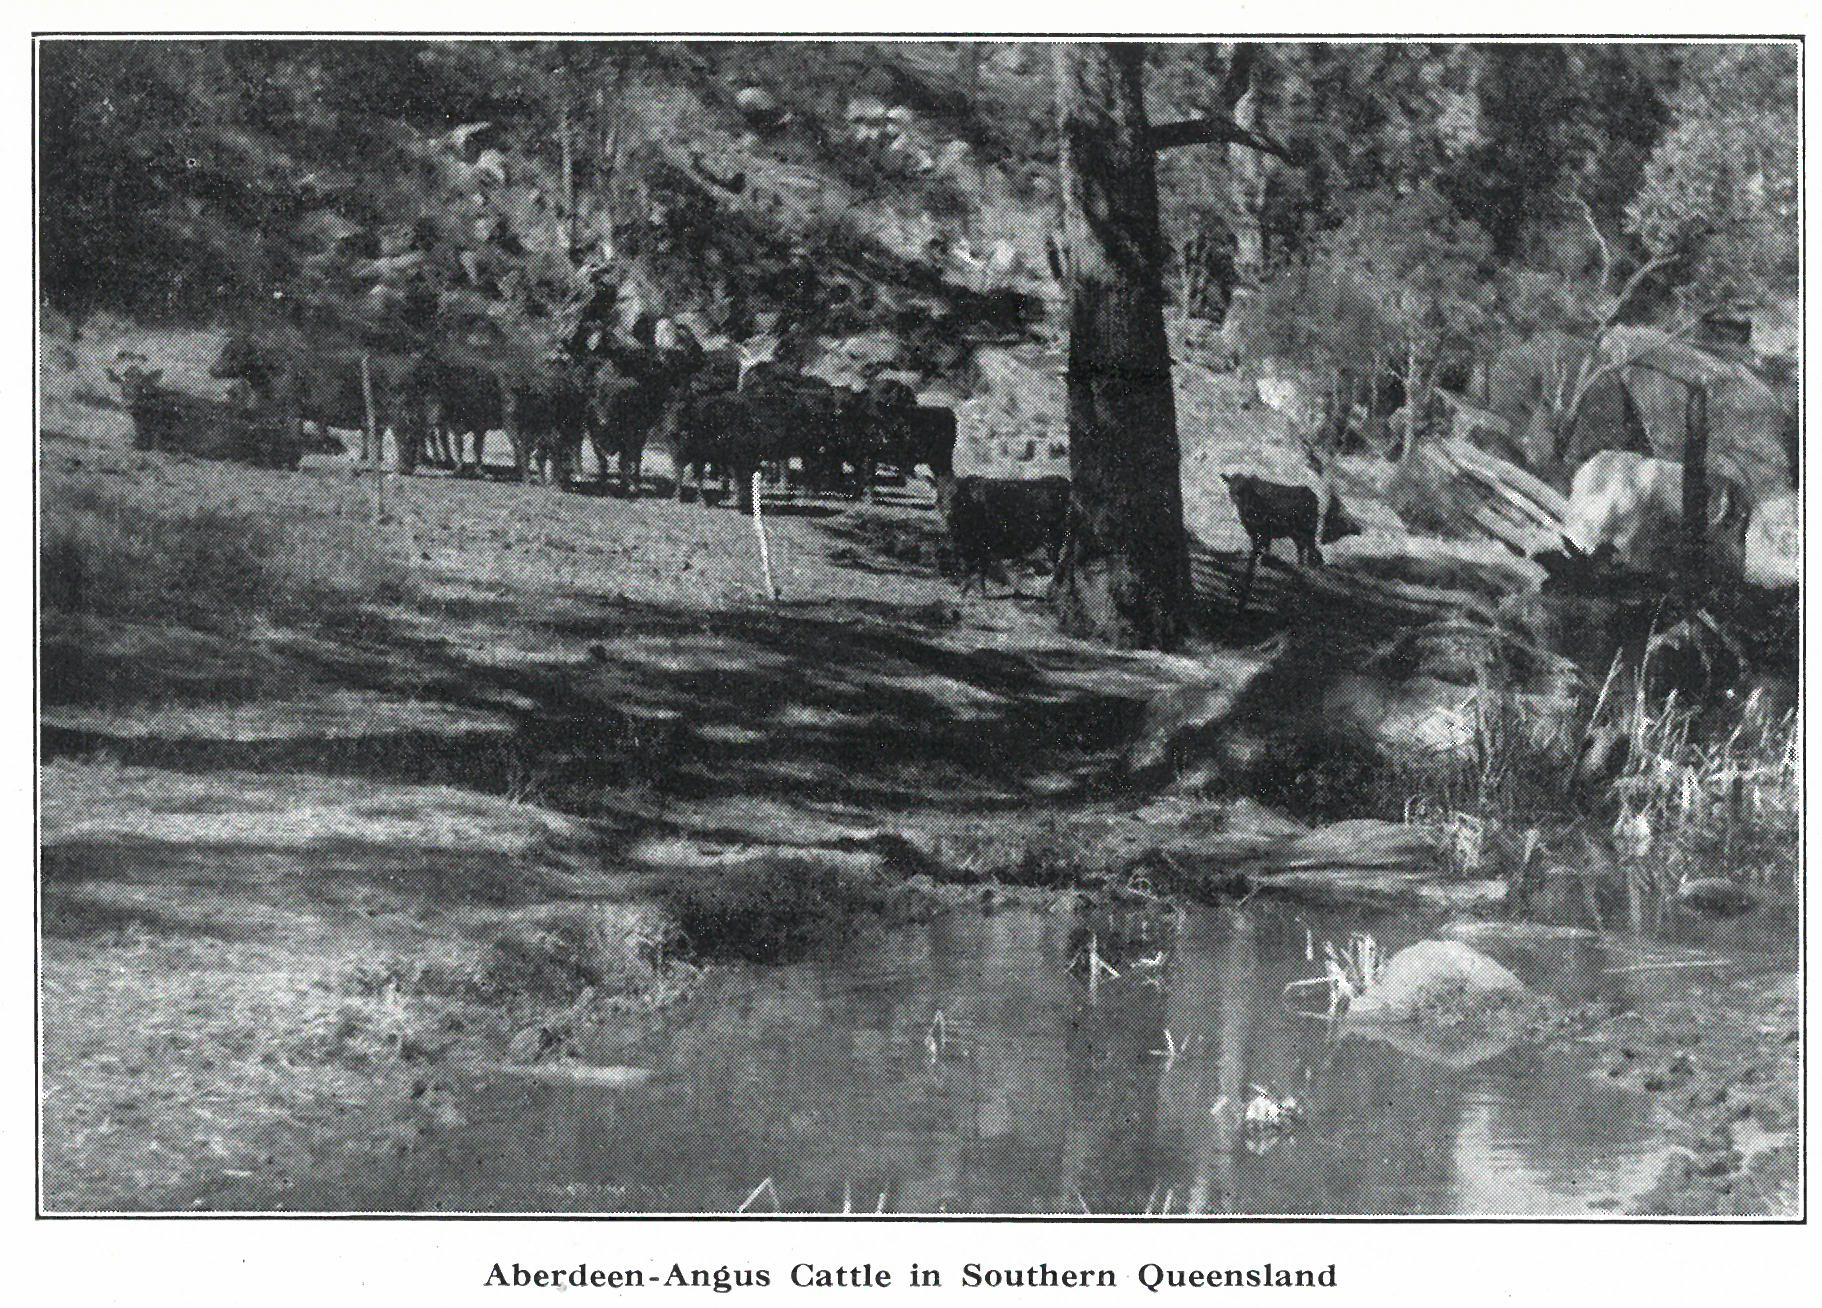 Angus cattle in Southern Queensland